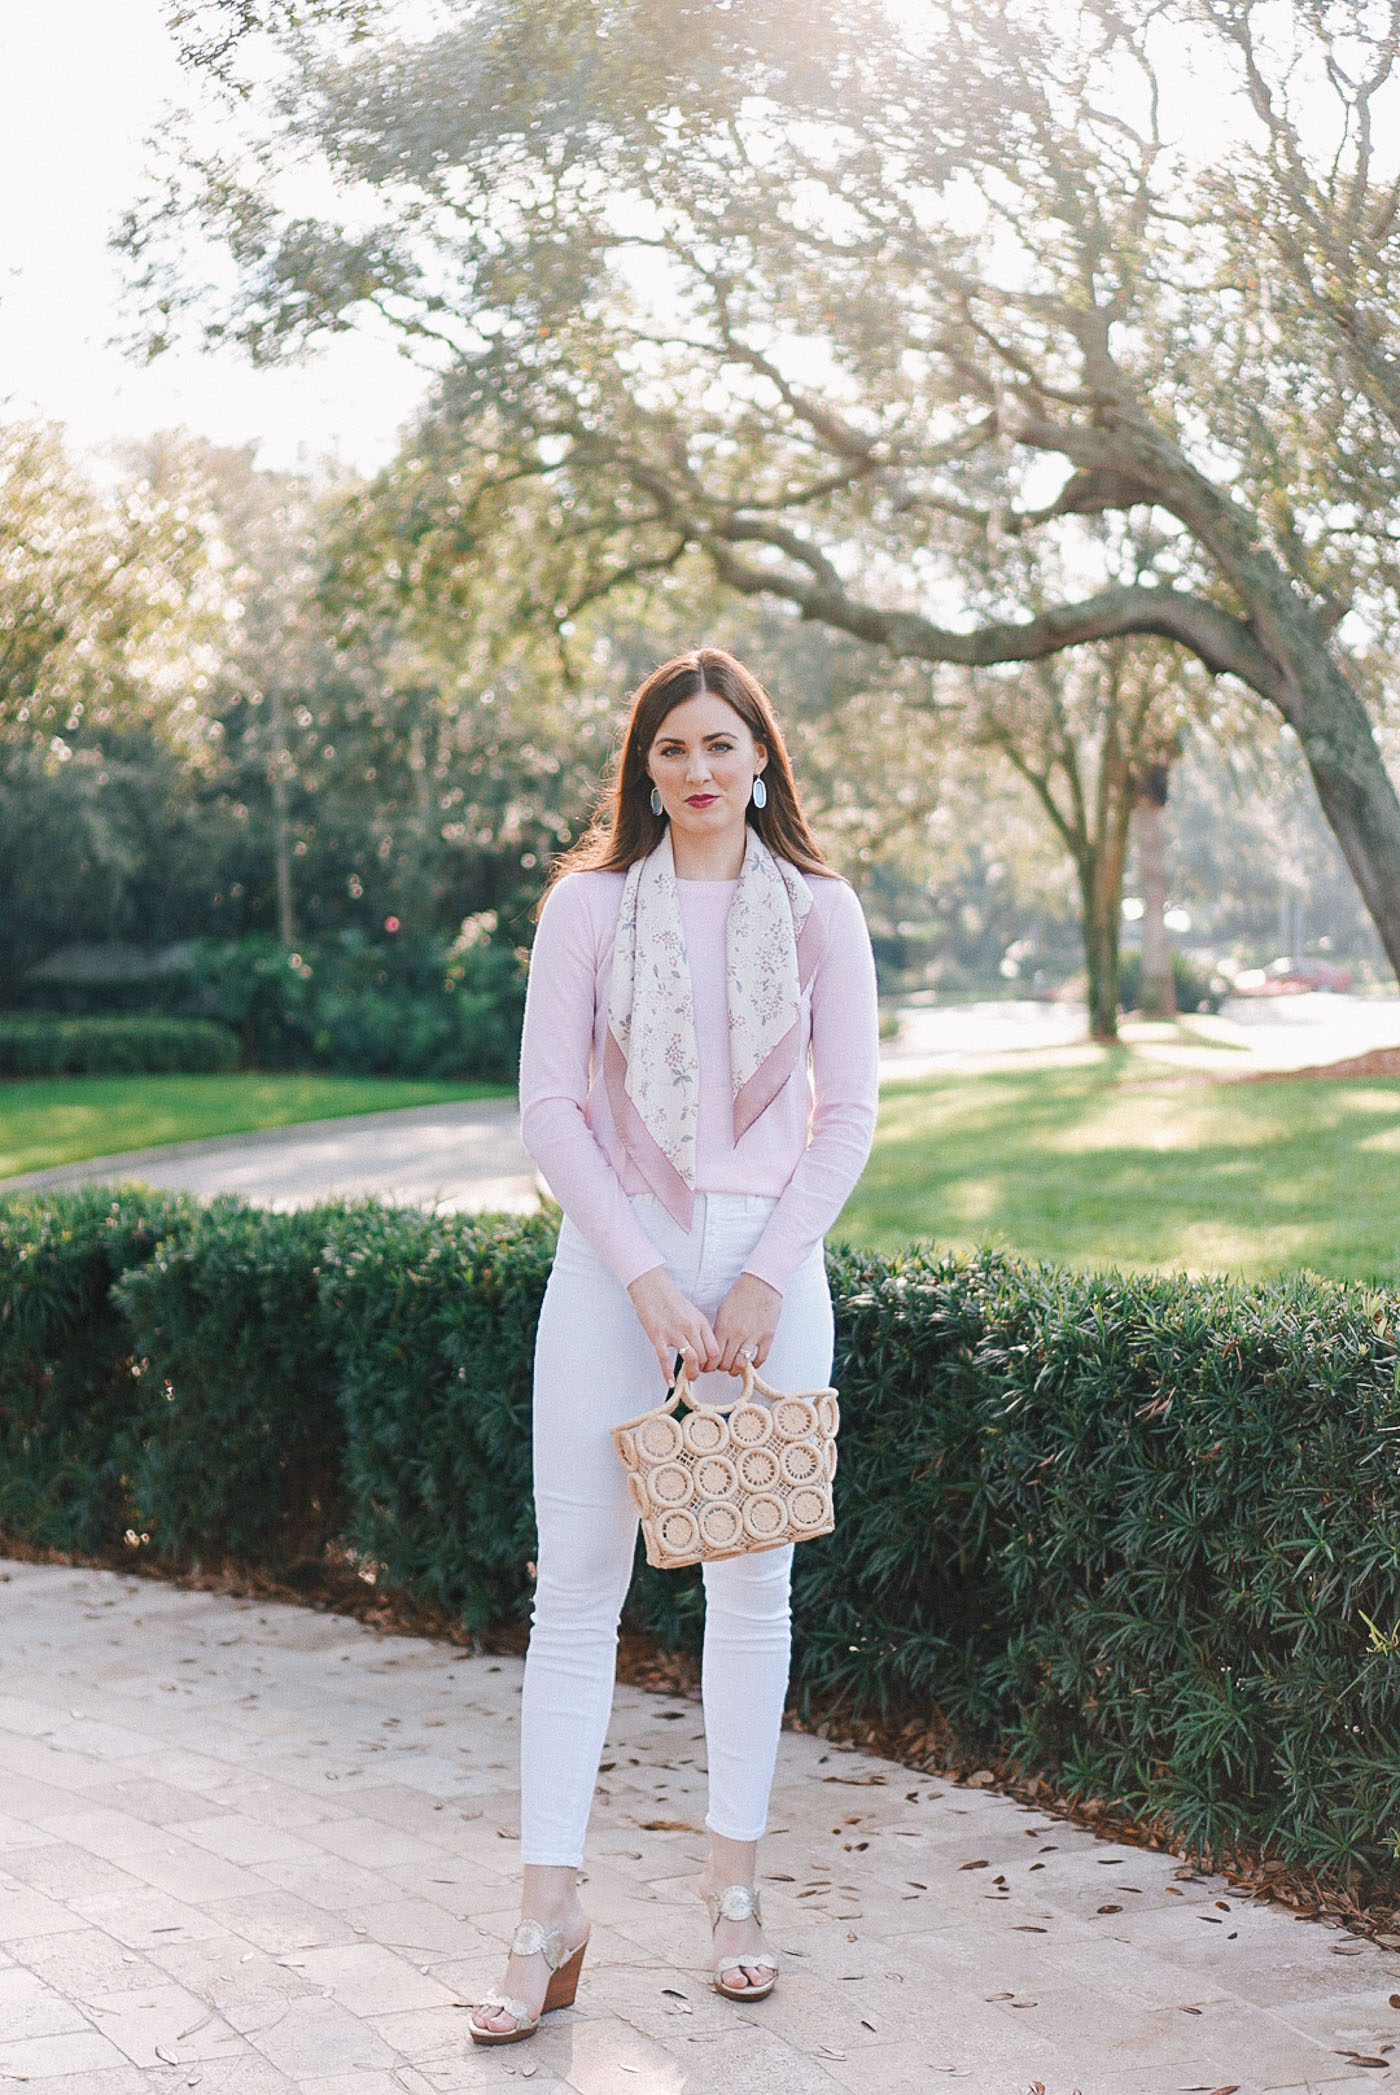 A review of The Southern Coterie Summit in Sea Island Georgia by Lauren Cermak of the Southern lifestyle blog, Going For Grace.